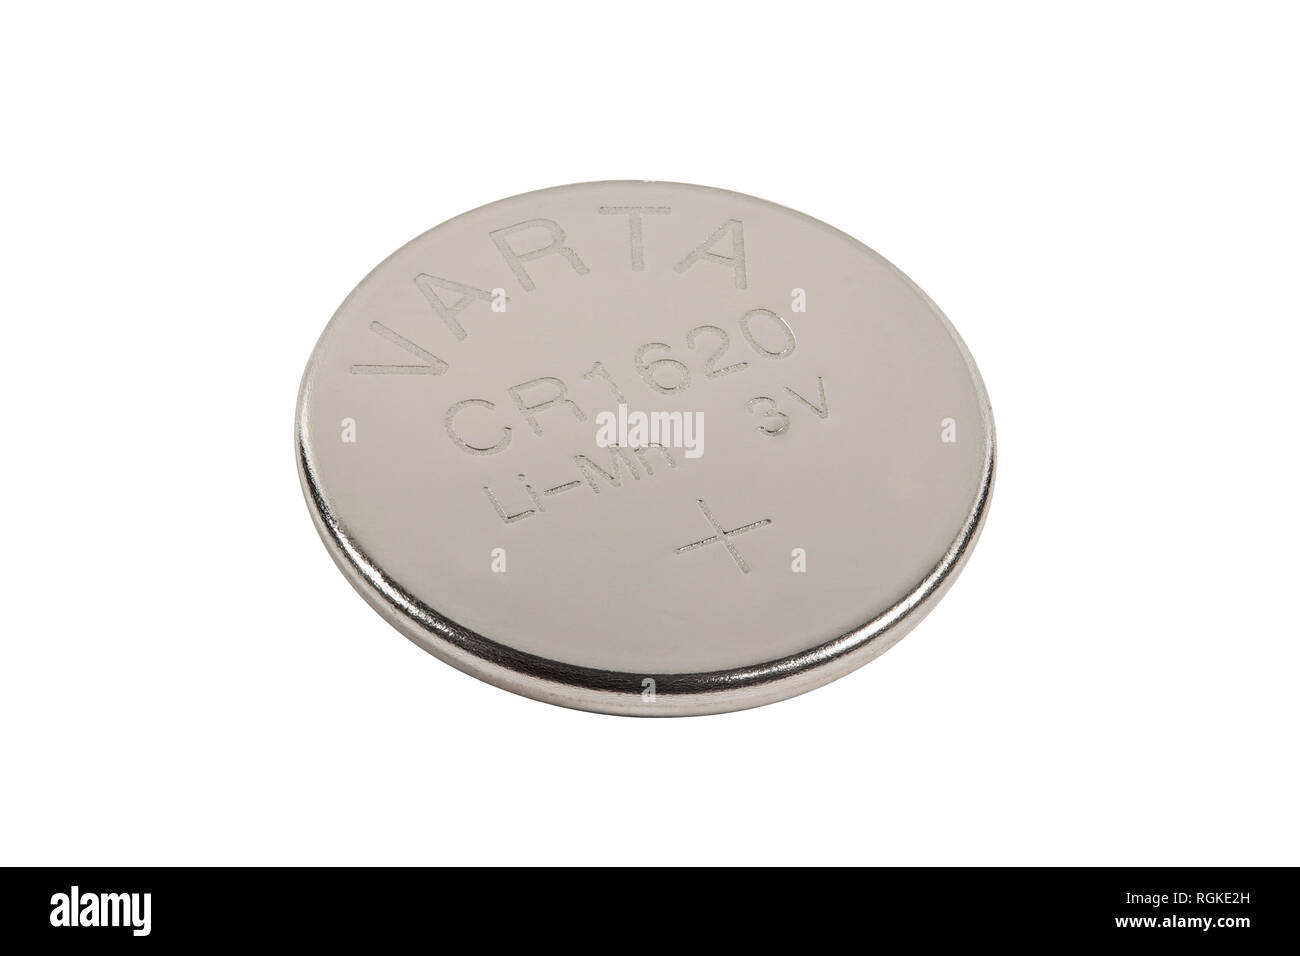 A Varta Lithium Button Cell Battery for a car key isolated on a white background - Stock Image